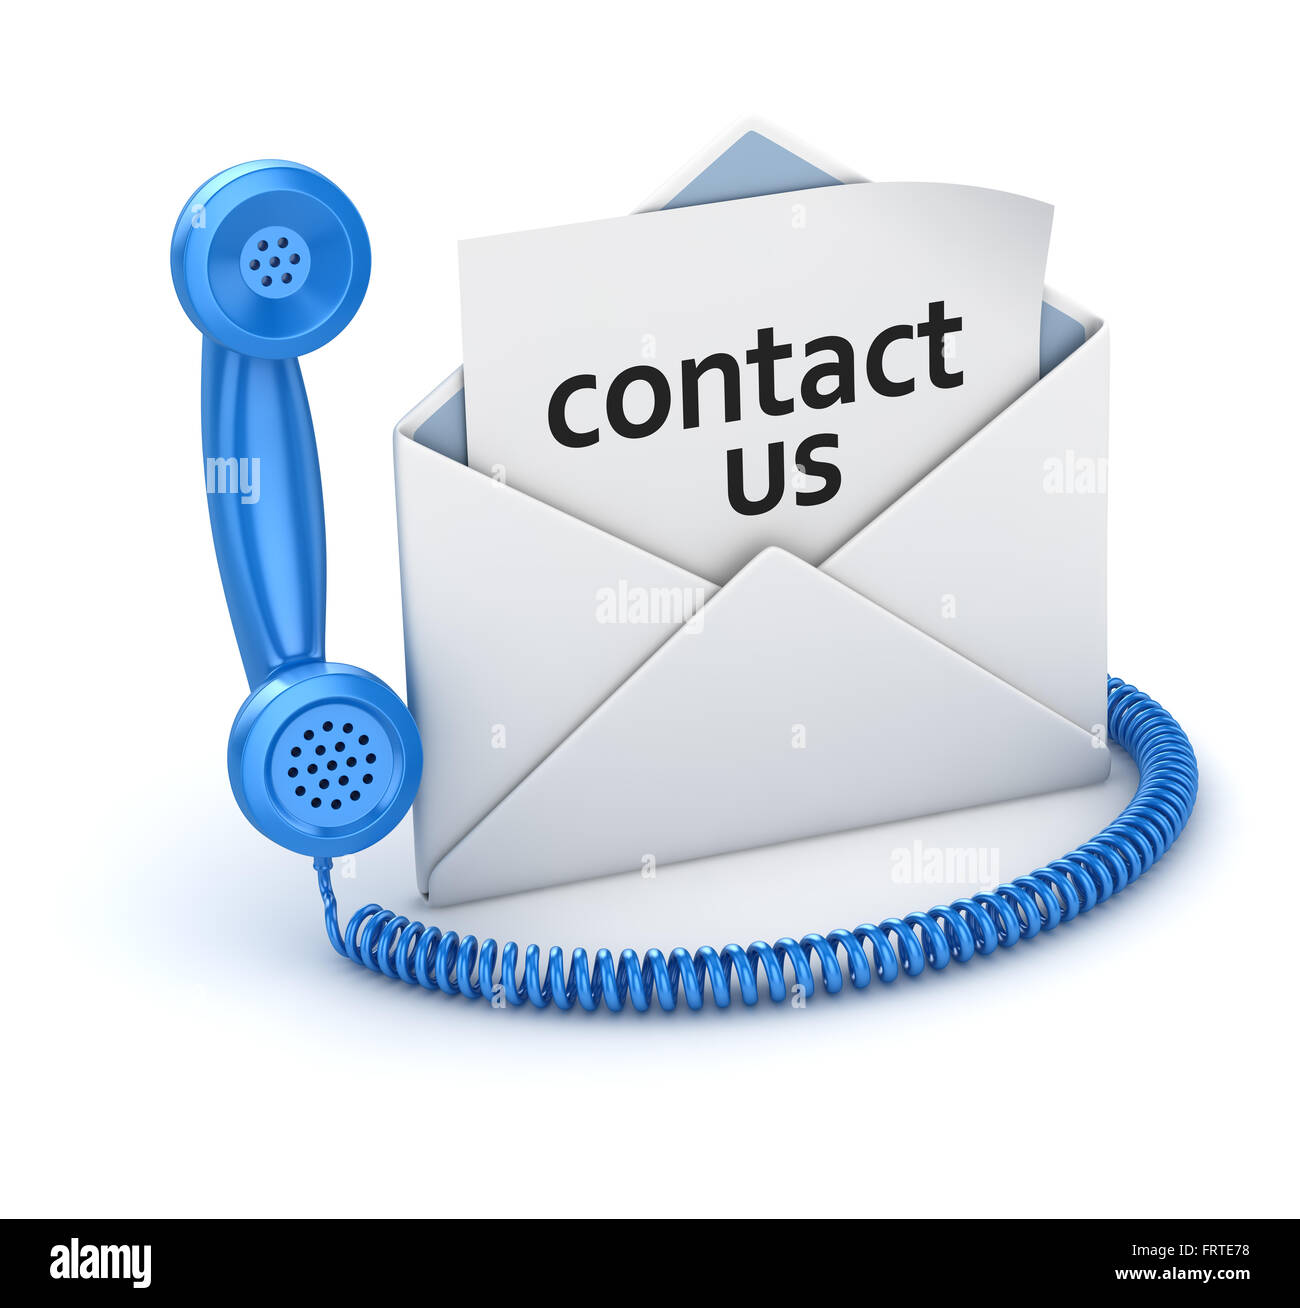 Contact us page in white envelope and blue handset , This is a 3d computer generated image. Isolated on white. - Stock Image